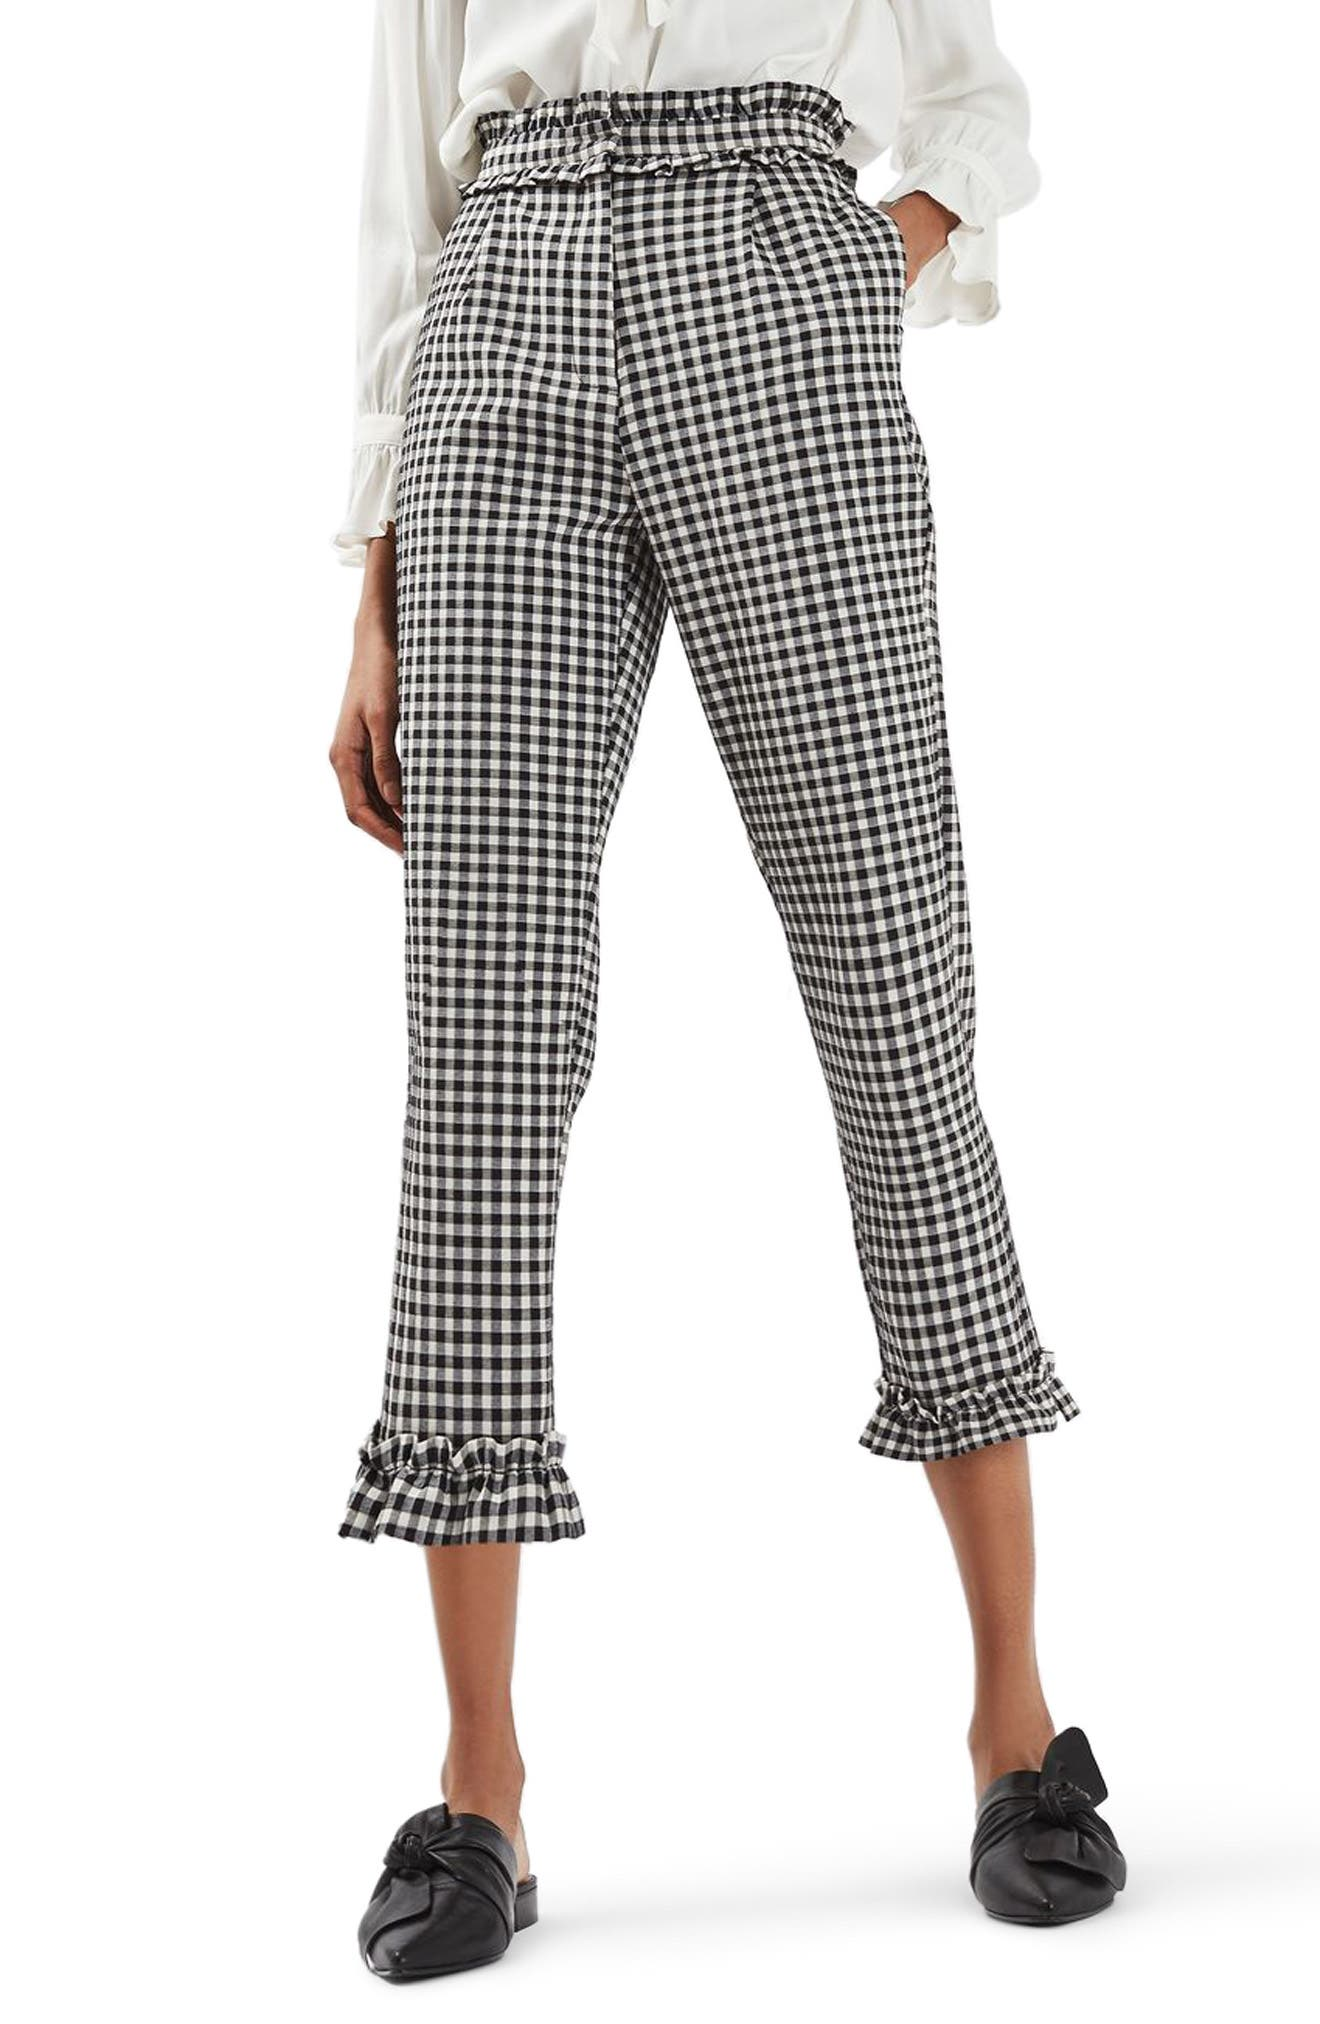 Topshop Gingham Ruffle Trousers